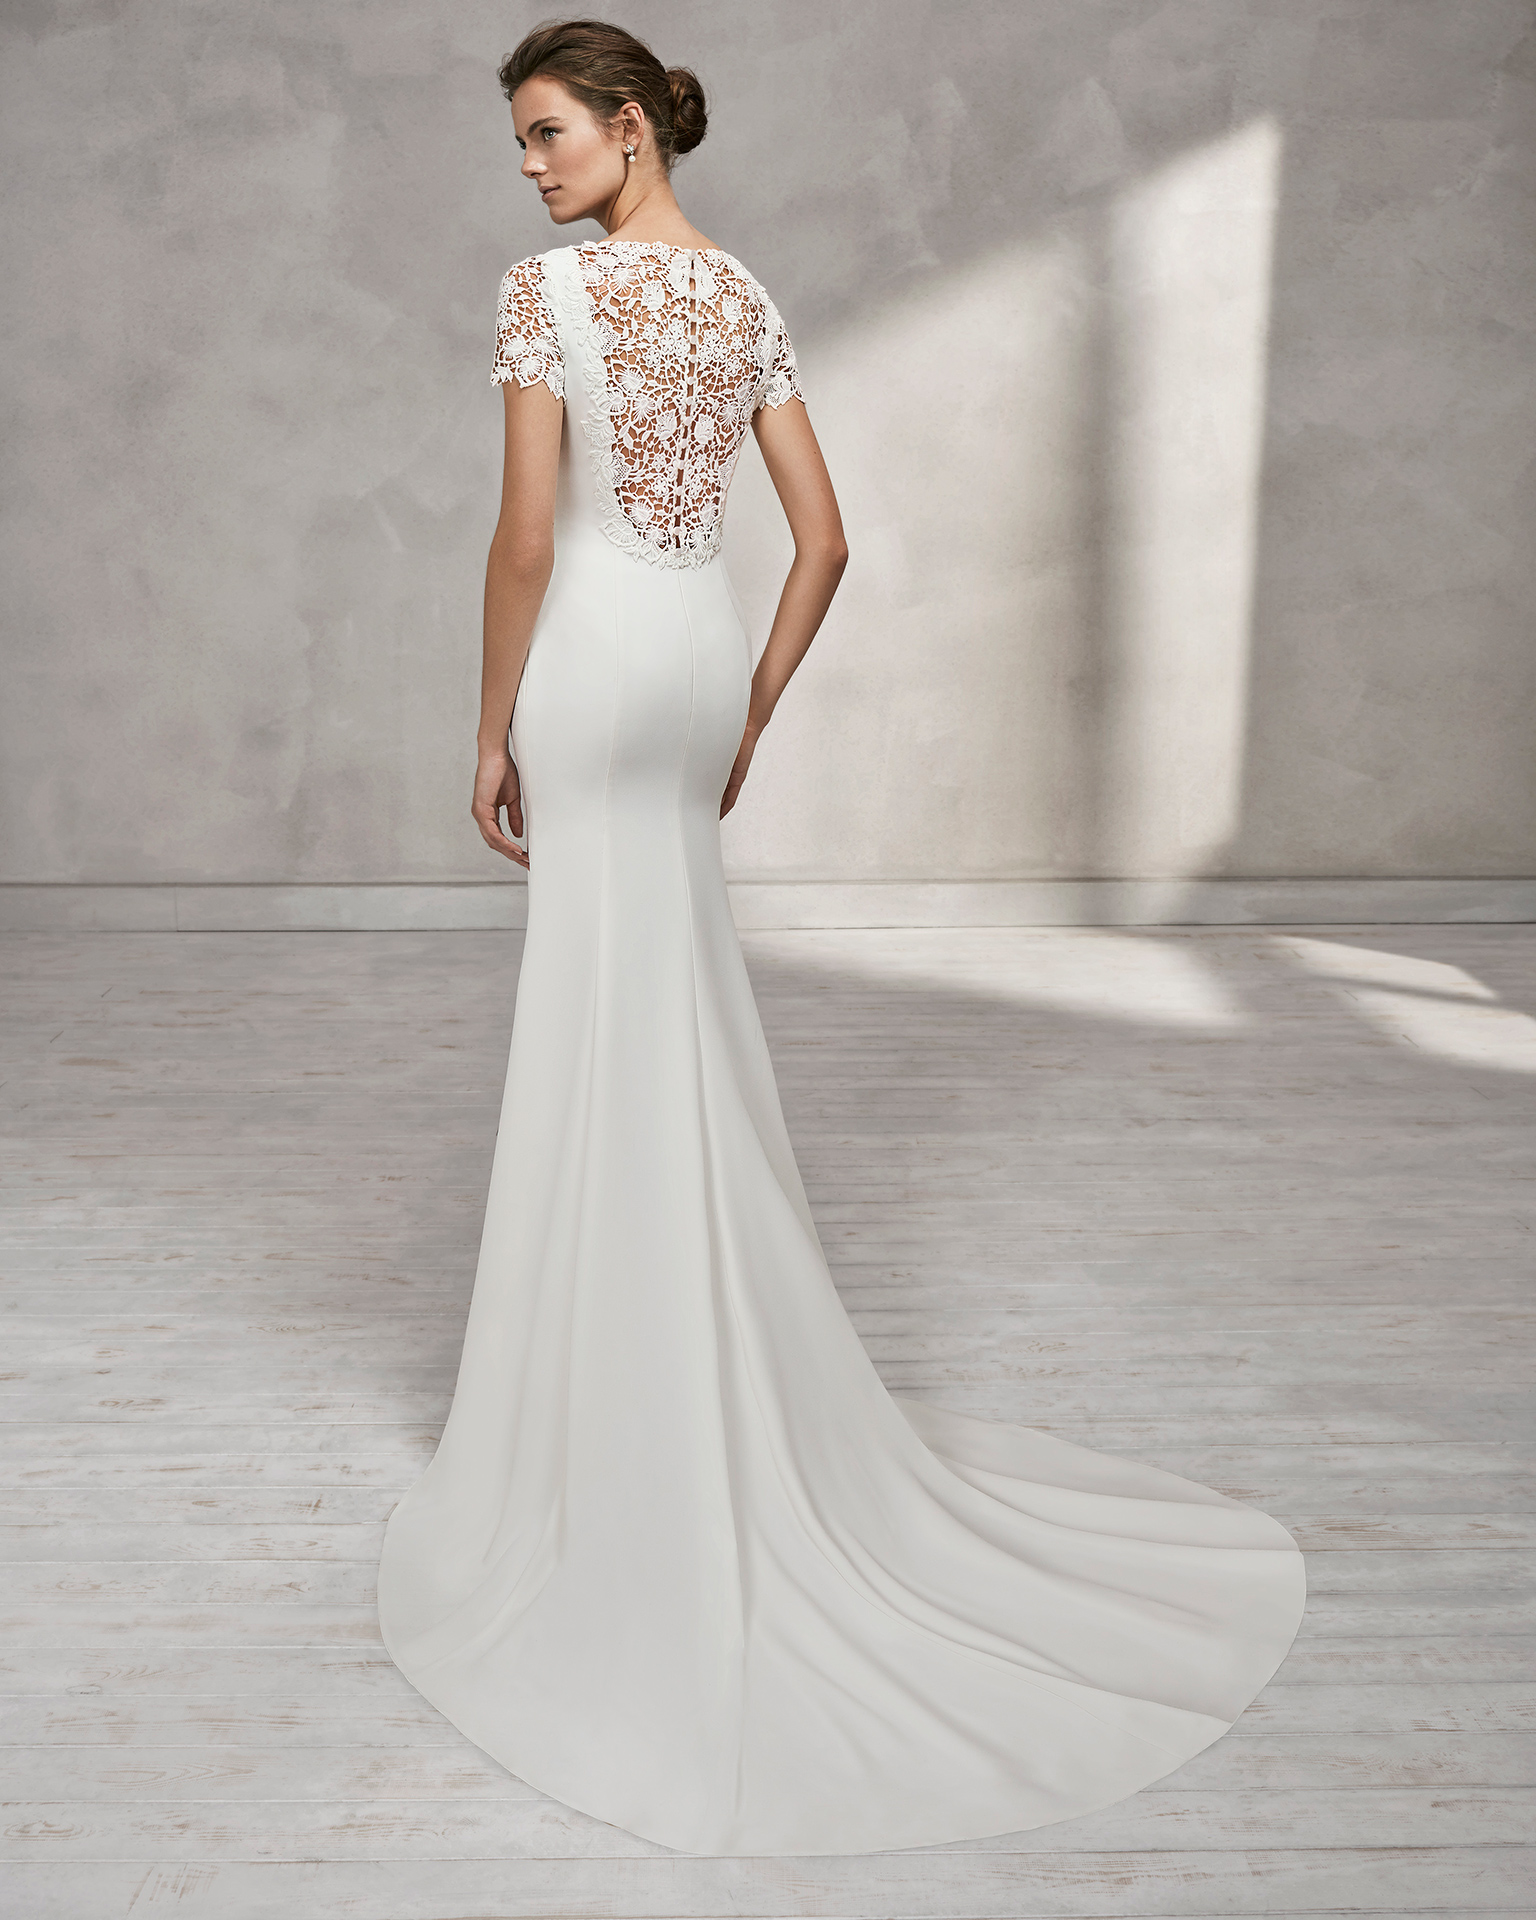 Mermaid-style crepe wedding dress with short sleeves, bateau neckline and guipure lace back.